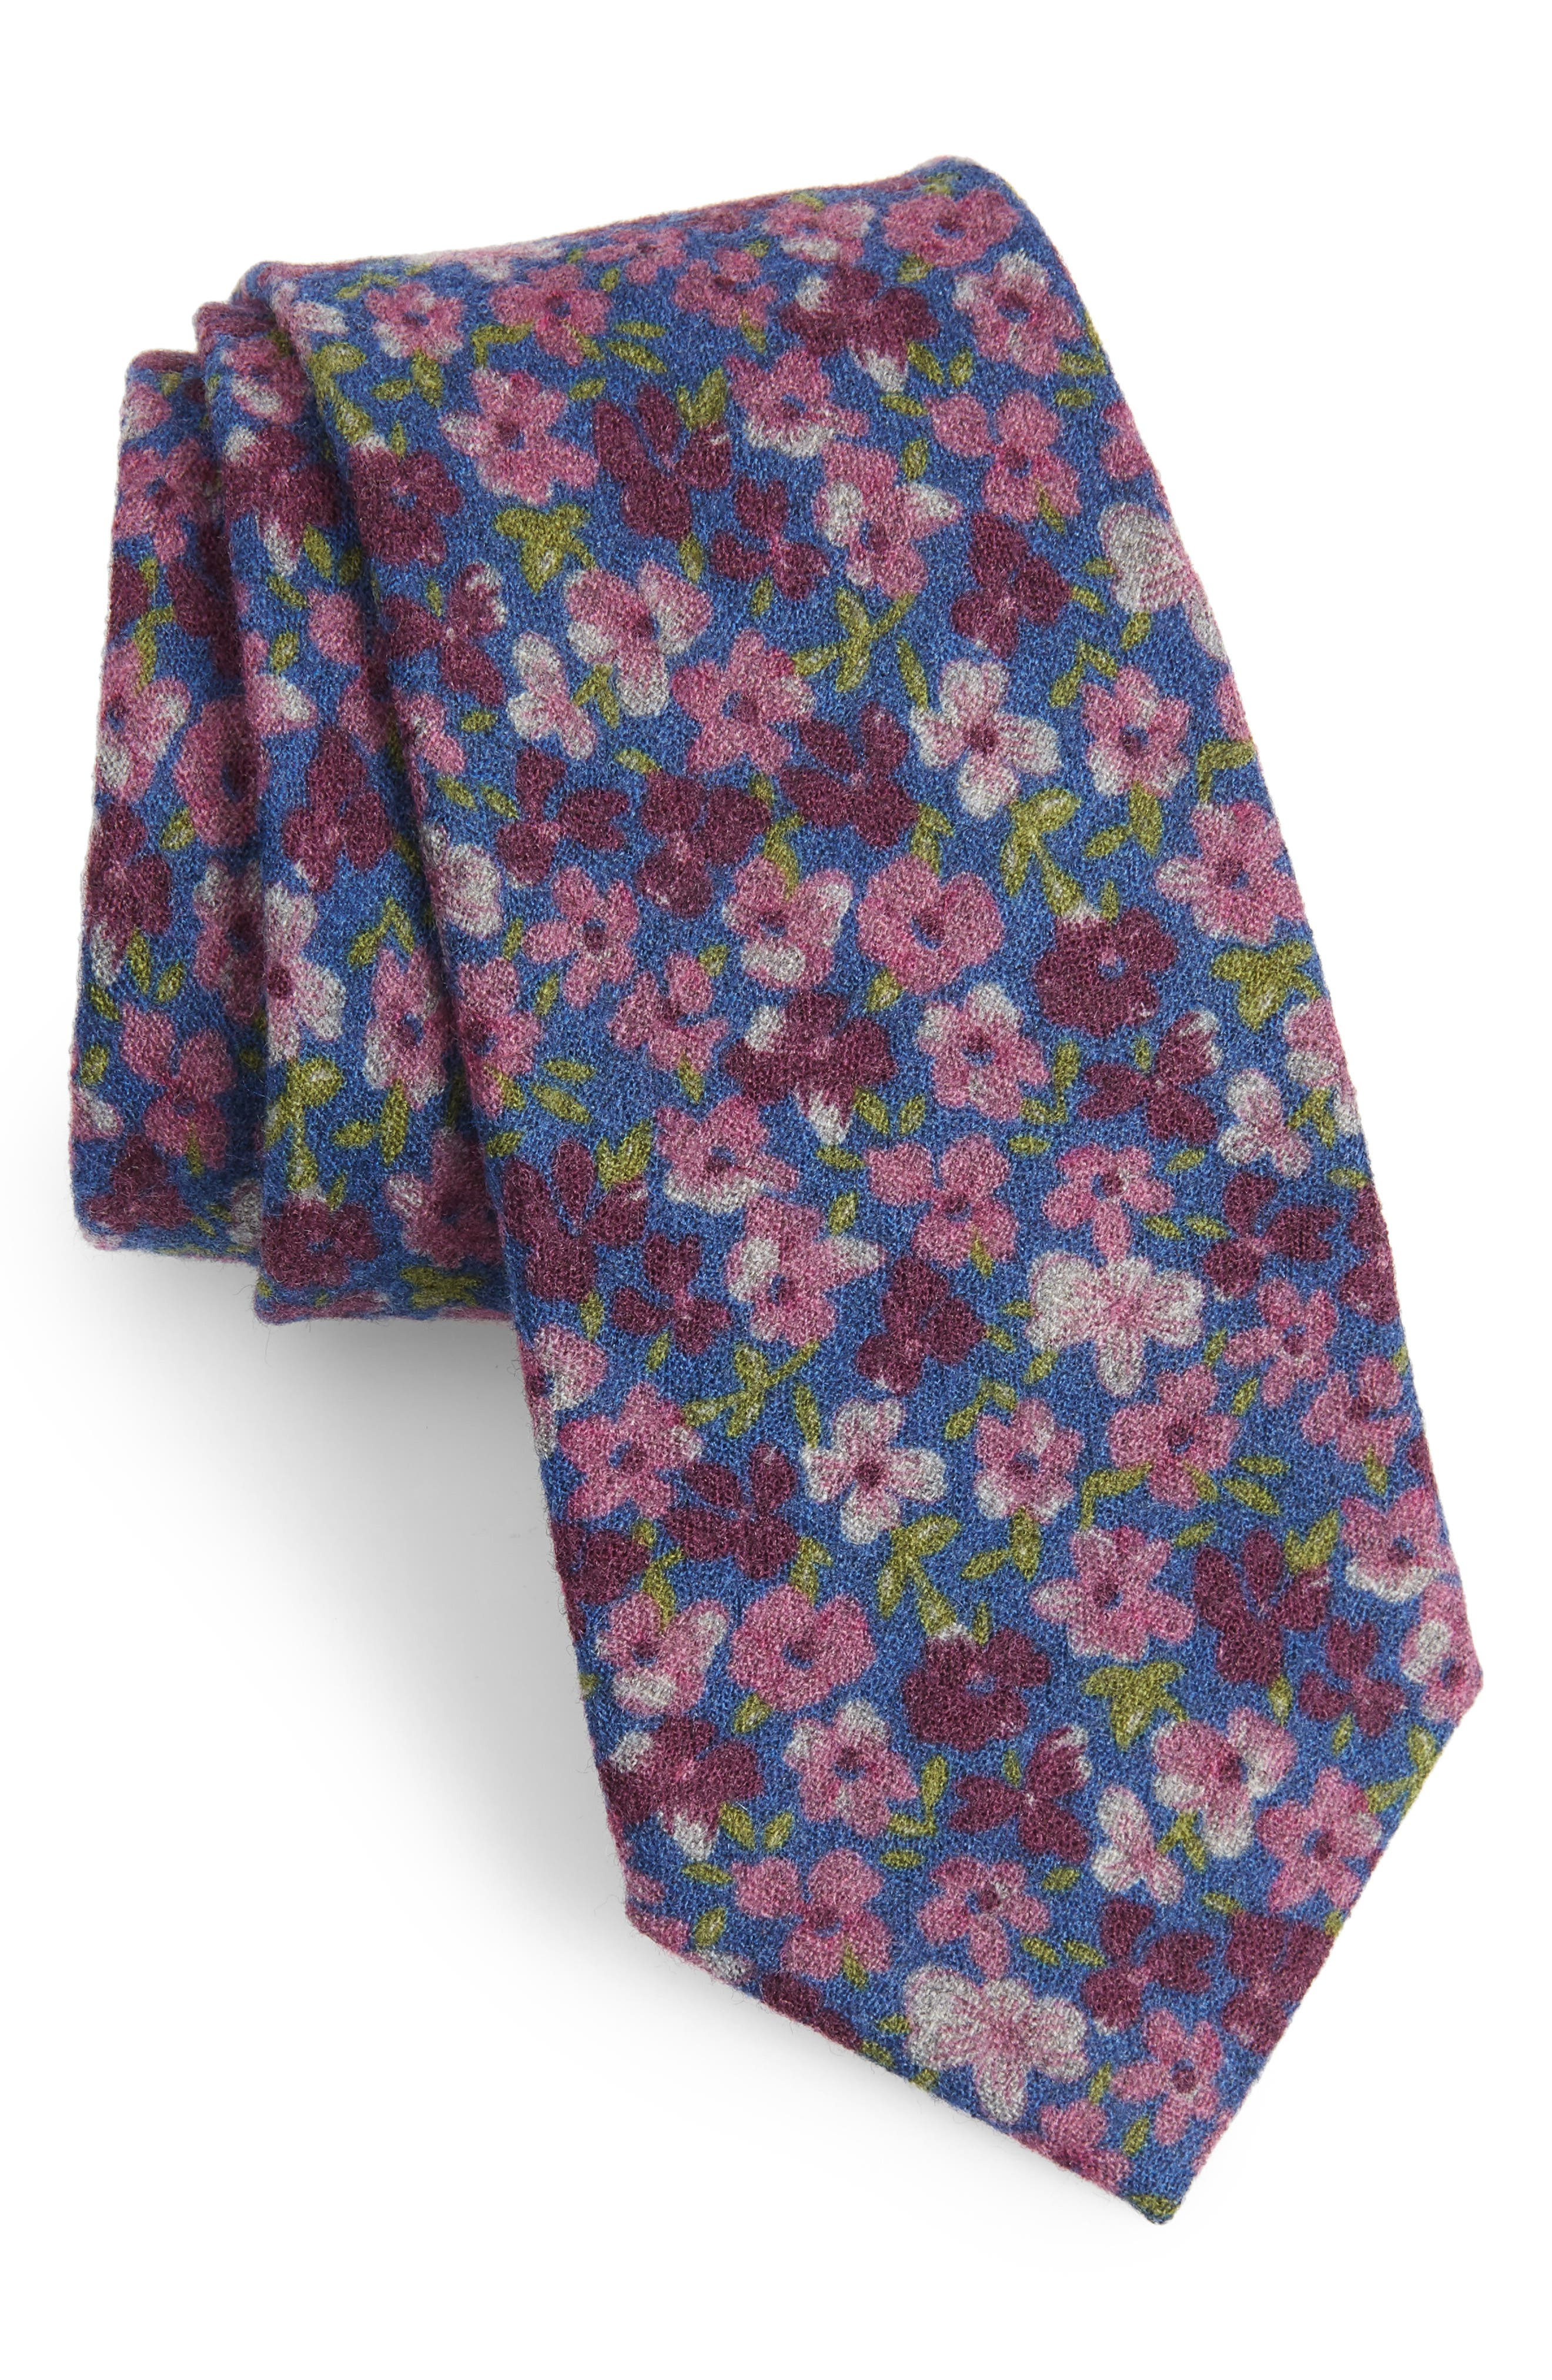 Garden Bloom Floral Wool Tie,                             Main thumbnail 1, color,                             400